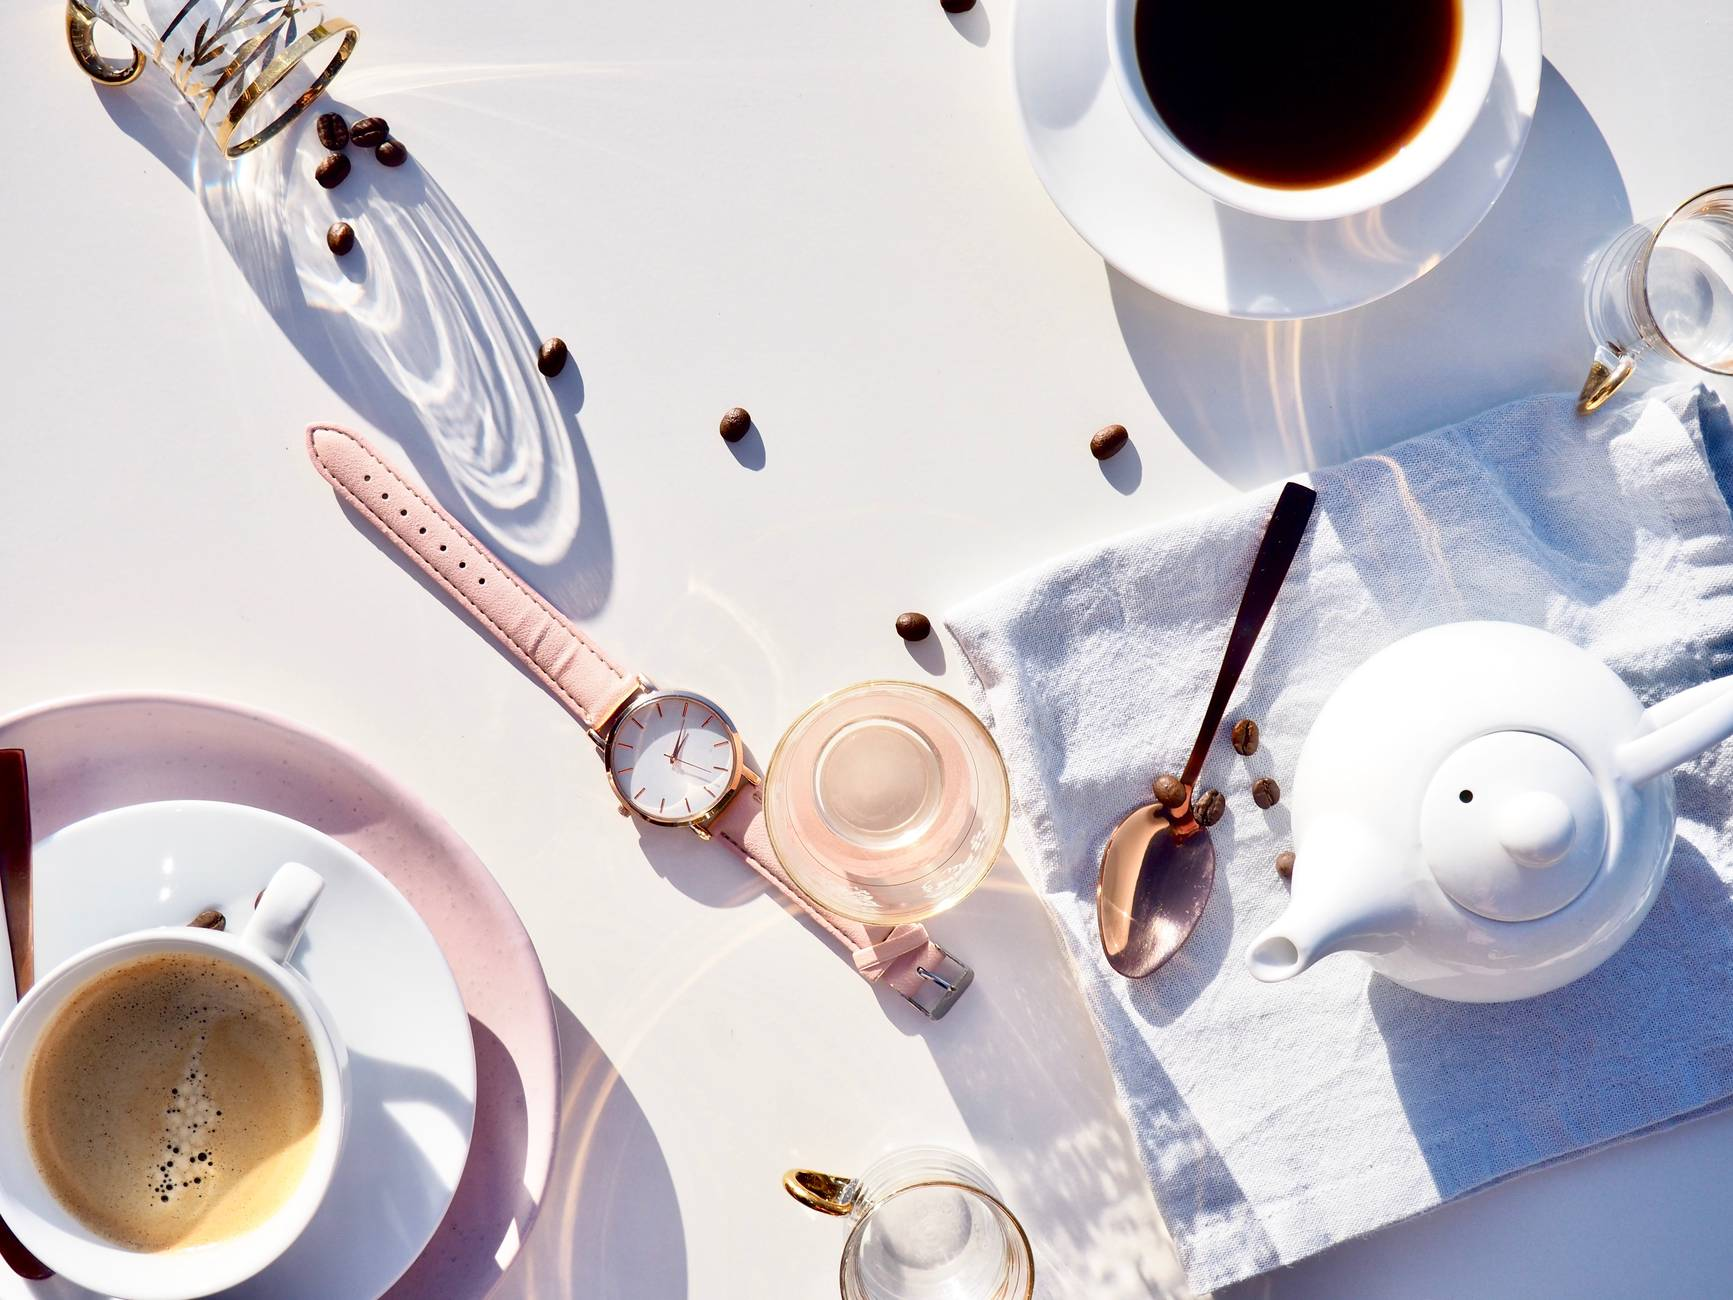 spoon watch cups and kettle on table